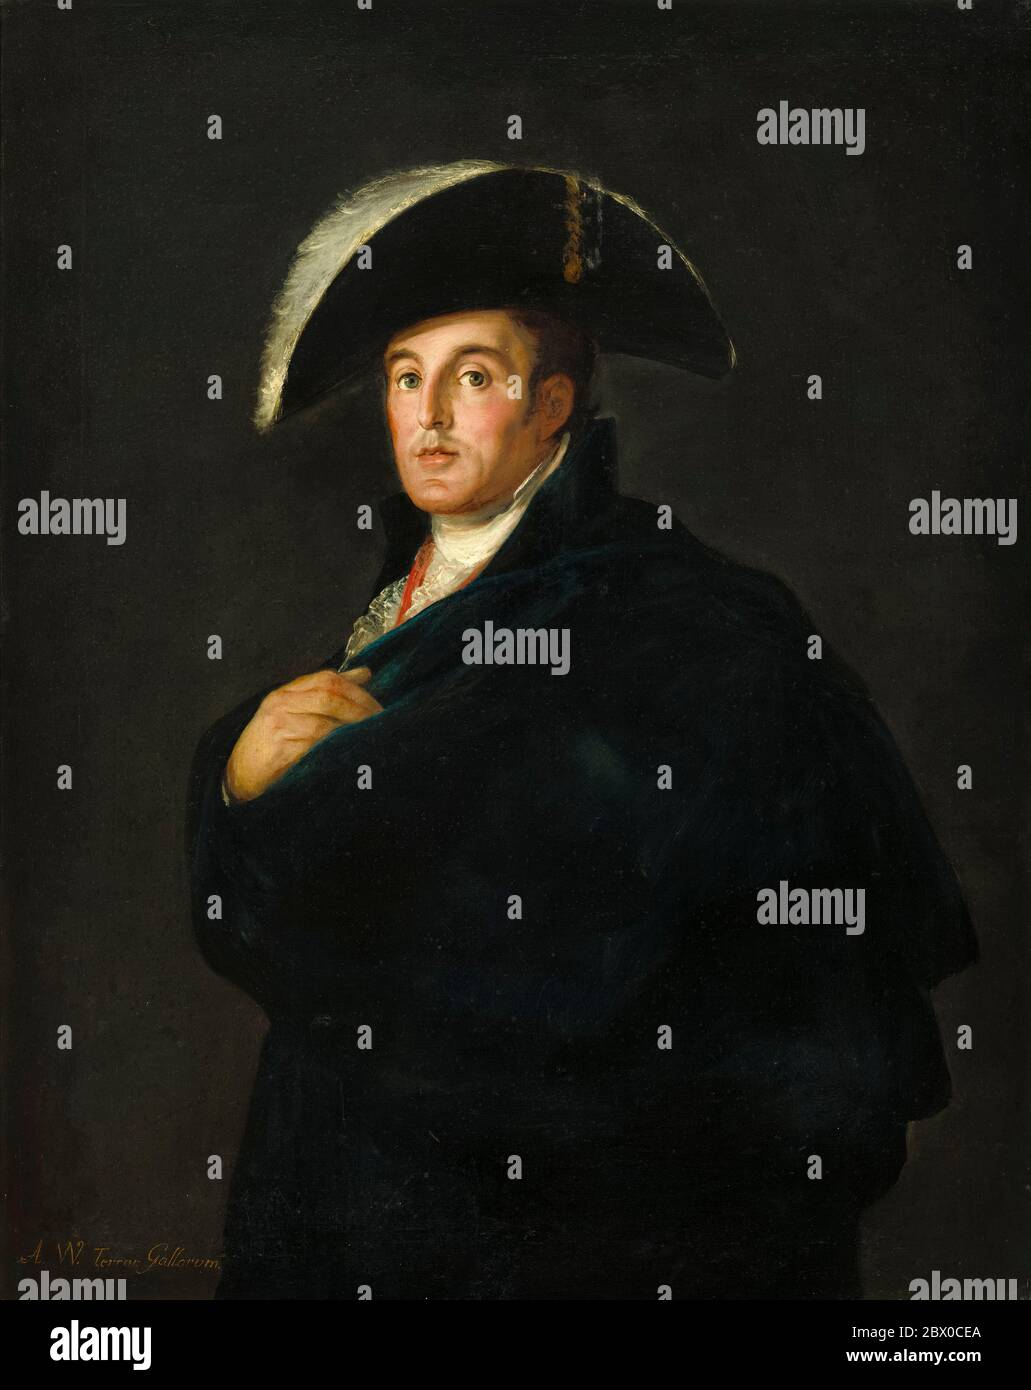 Taller de Francisco Goya, el Duque de Wellington (1769-1852), pintura de retratos, alrededor de 1812 Foto de stock